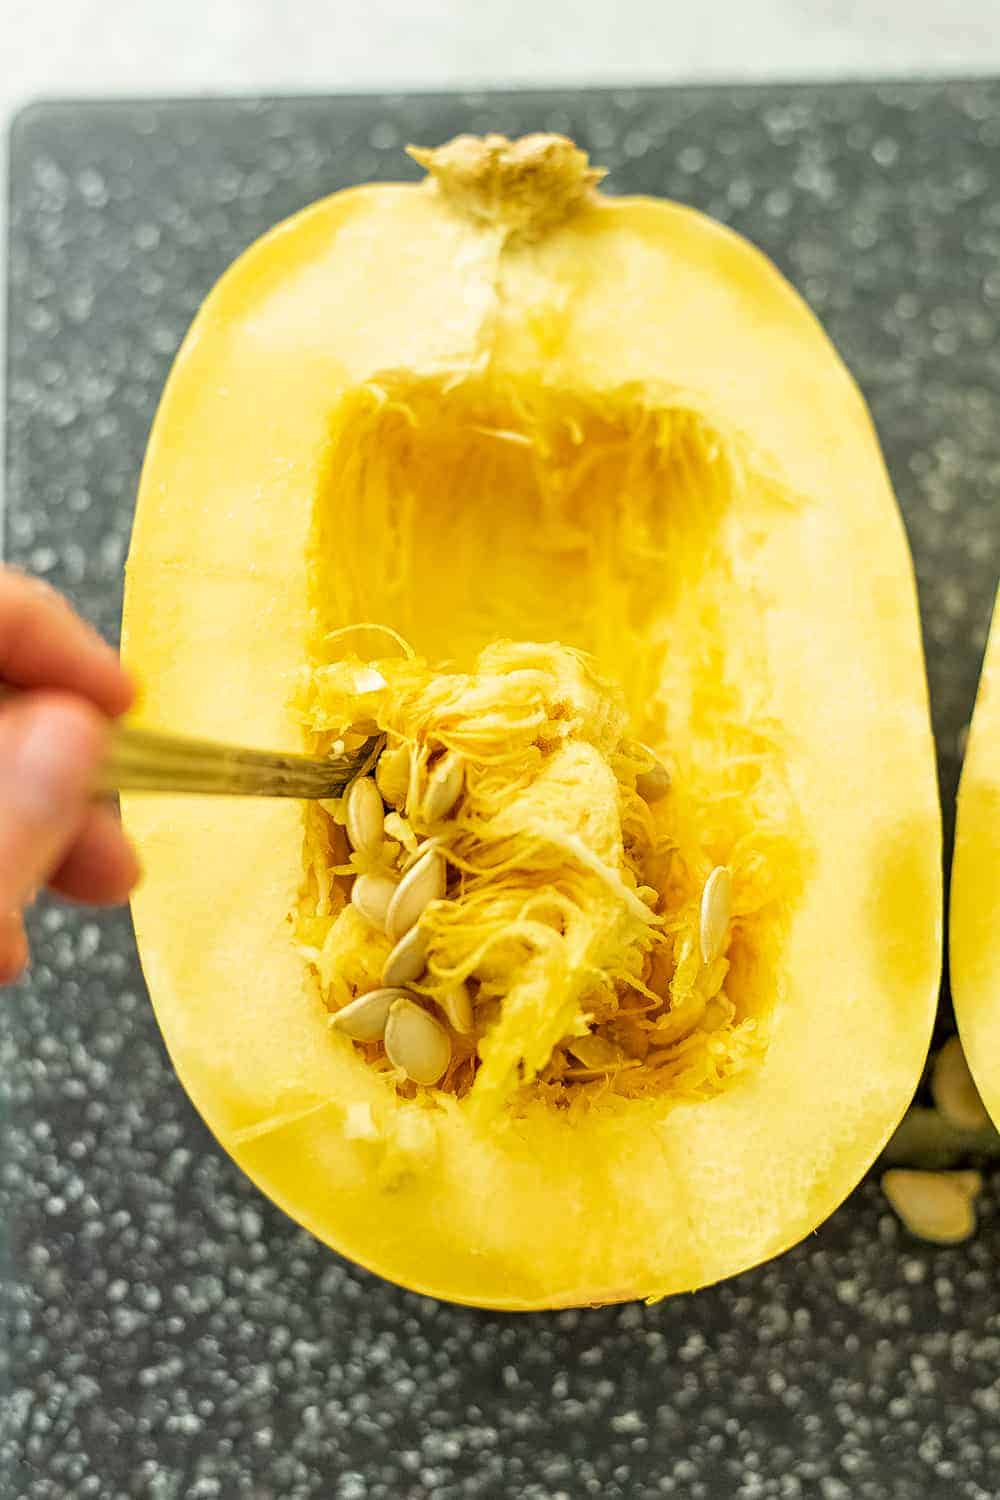 Spoon removing the seeds of a spaghetti squash.